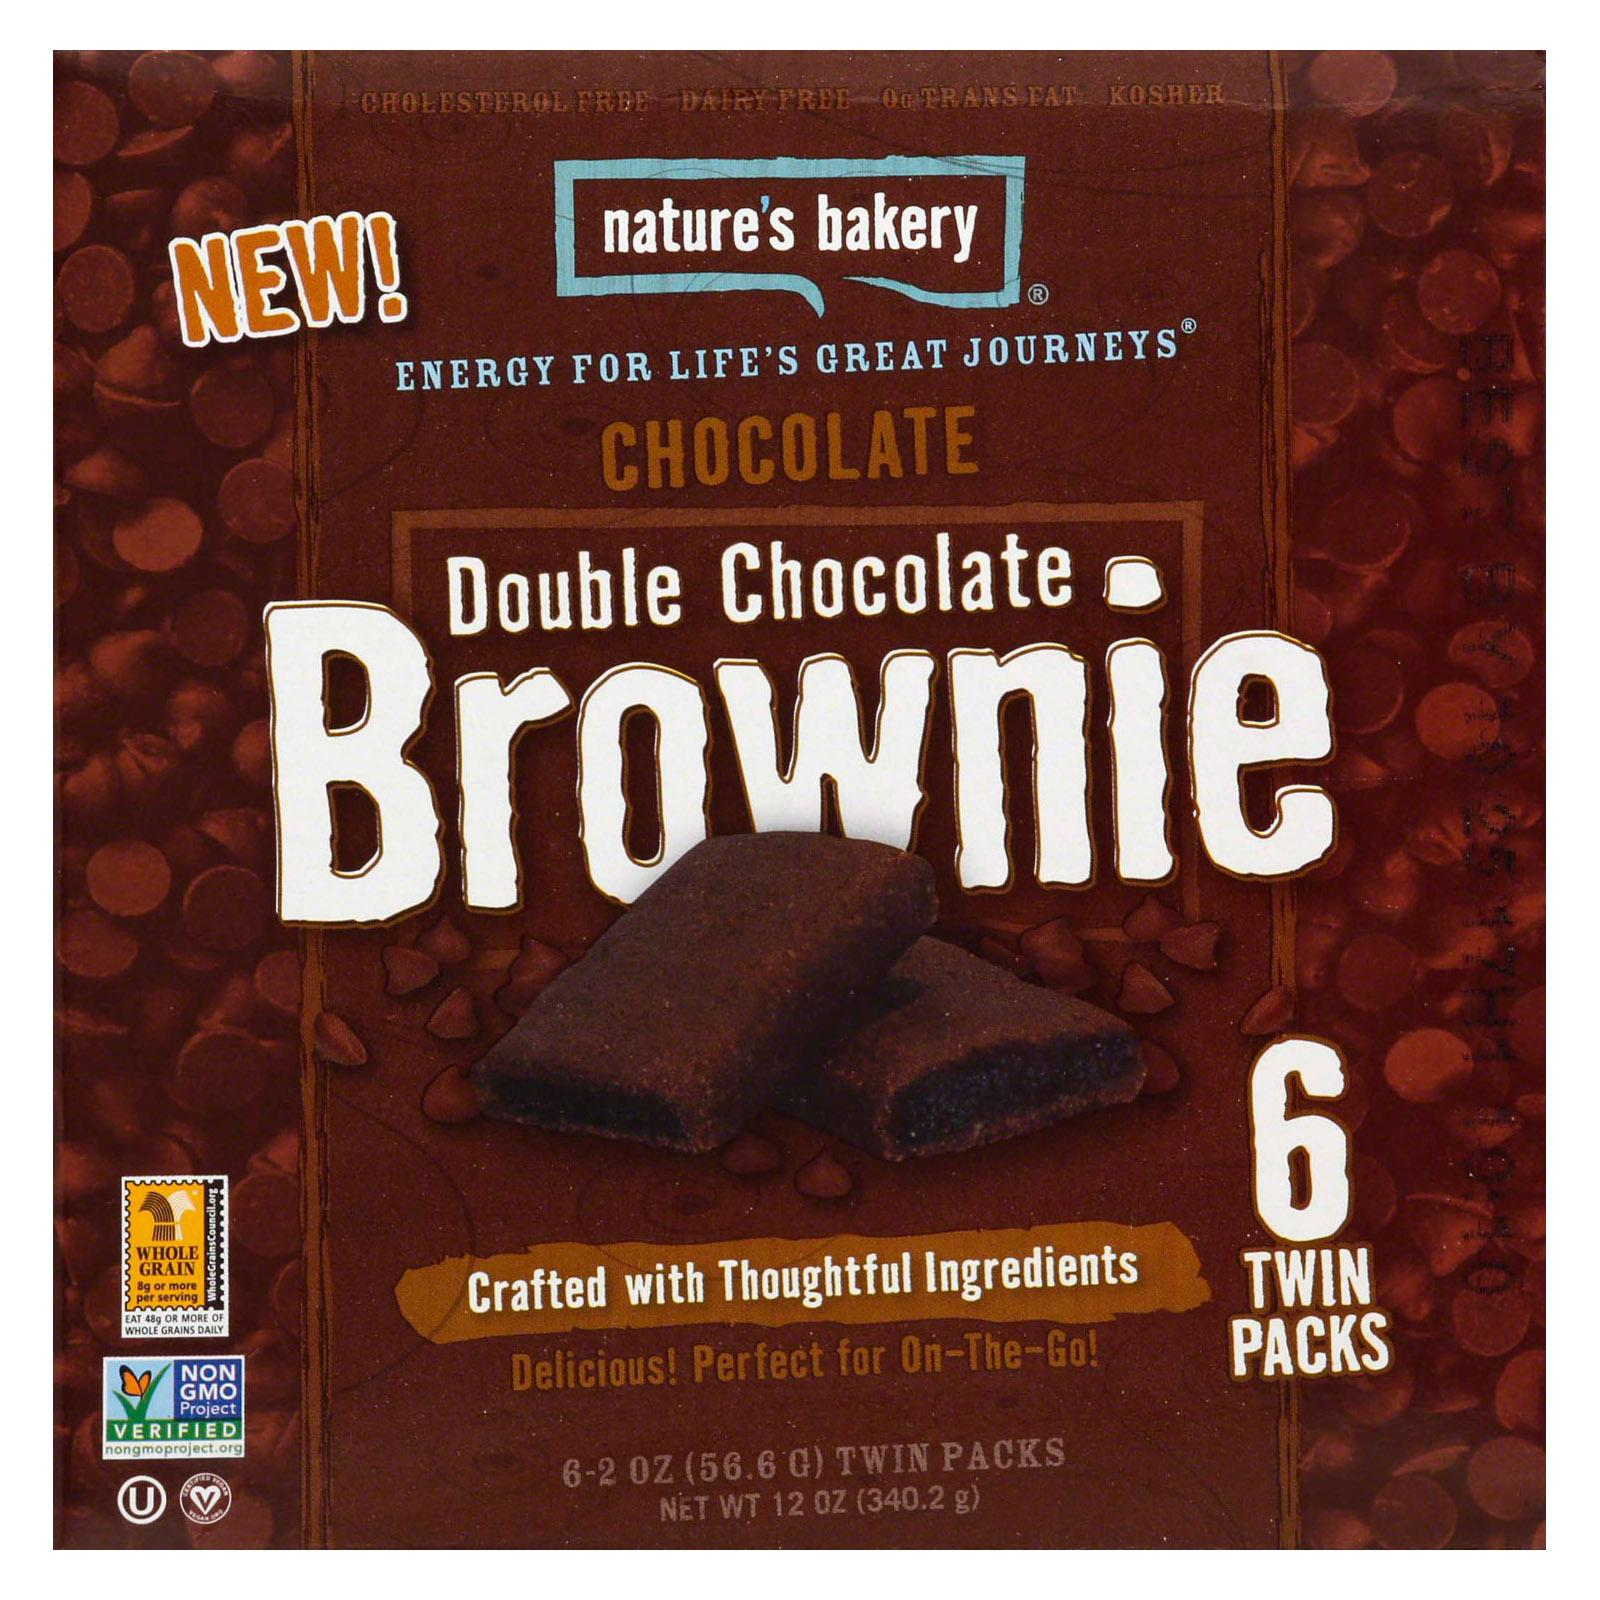 Nature's Bakery Chocolate Brownie - Double Chocolate: 36 bars